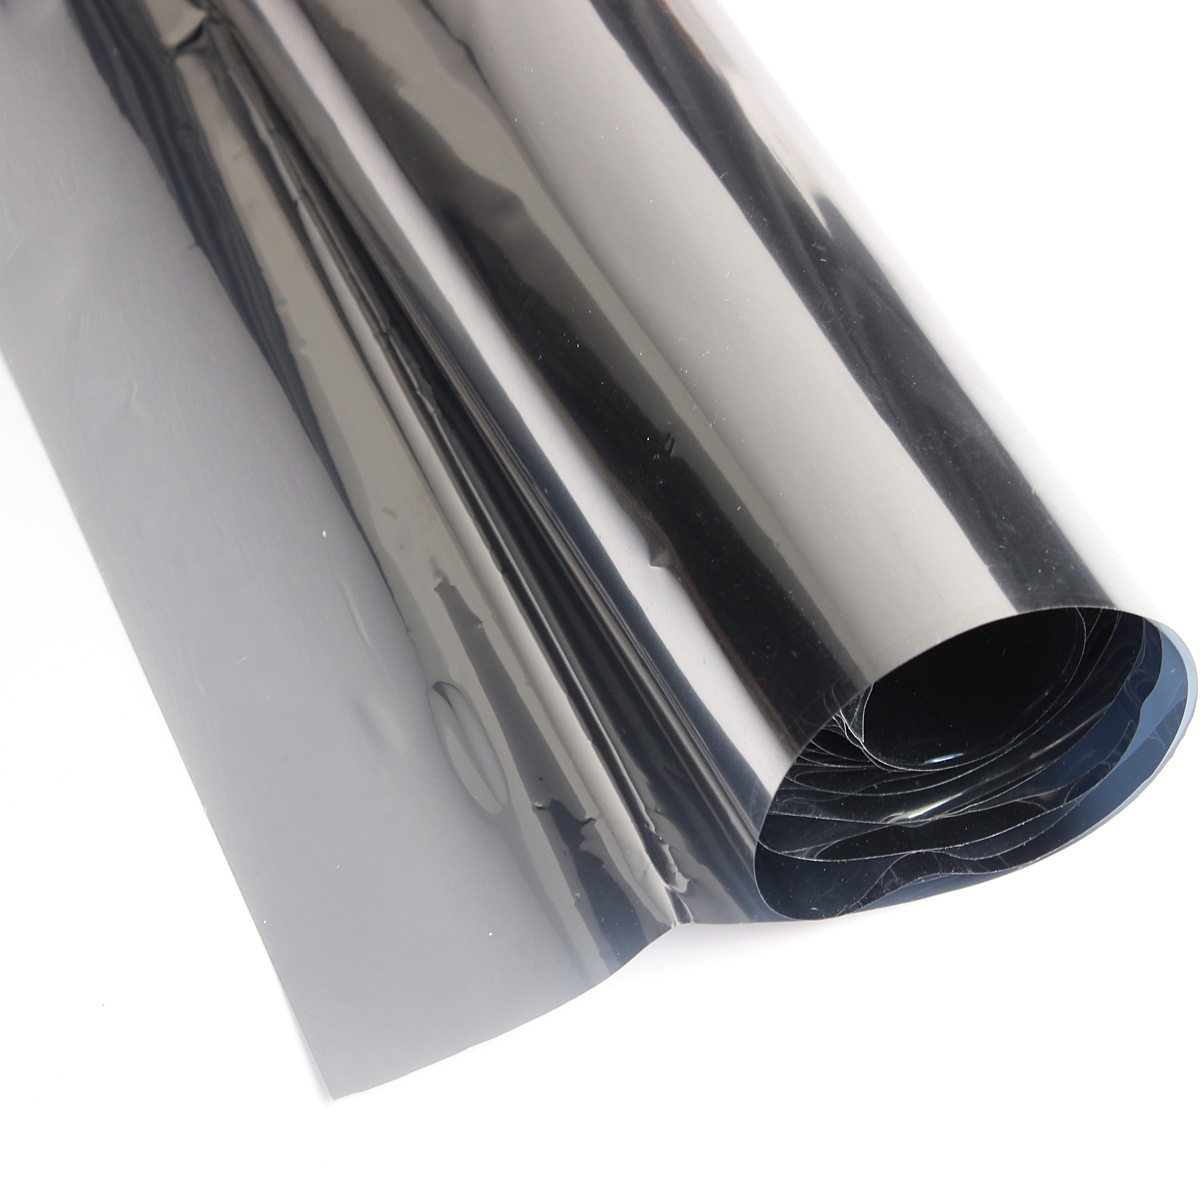 reflective window film one way mirror film solar silver- 50cm x 2m